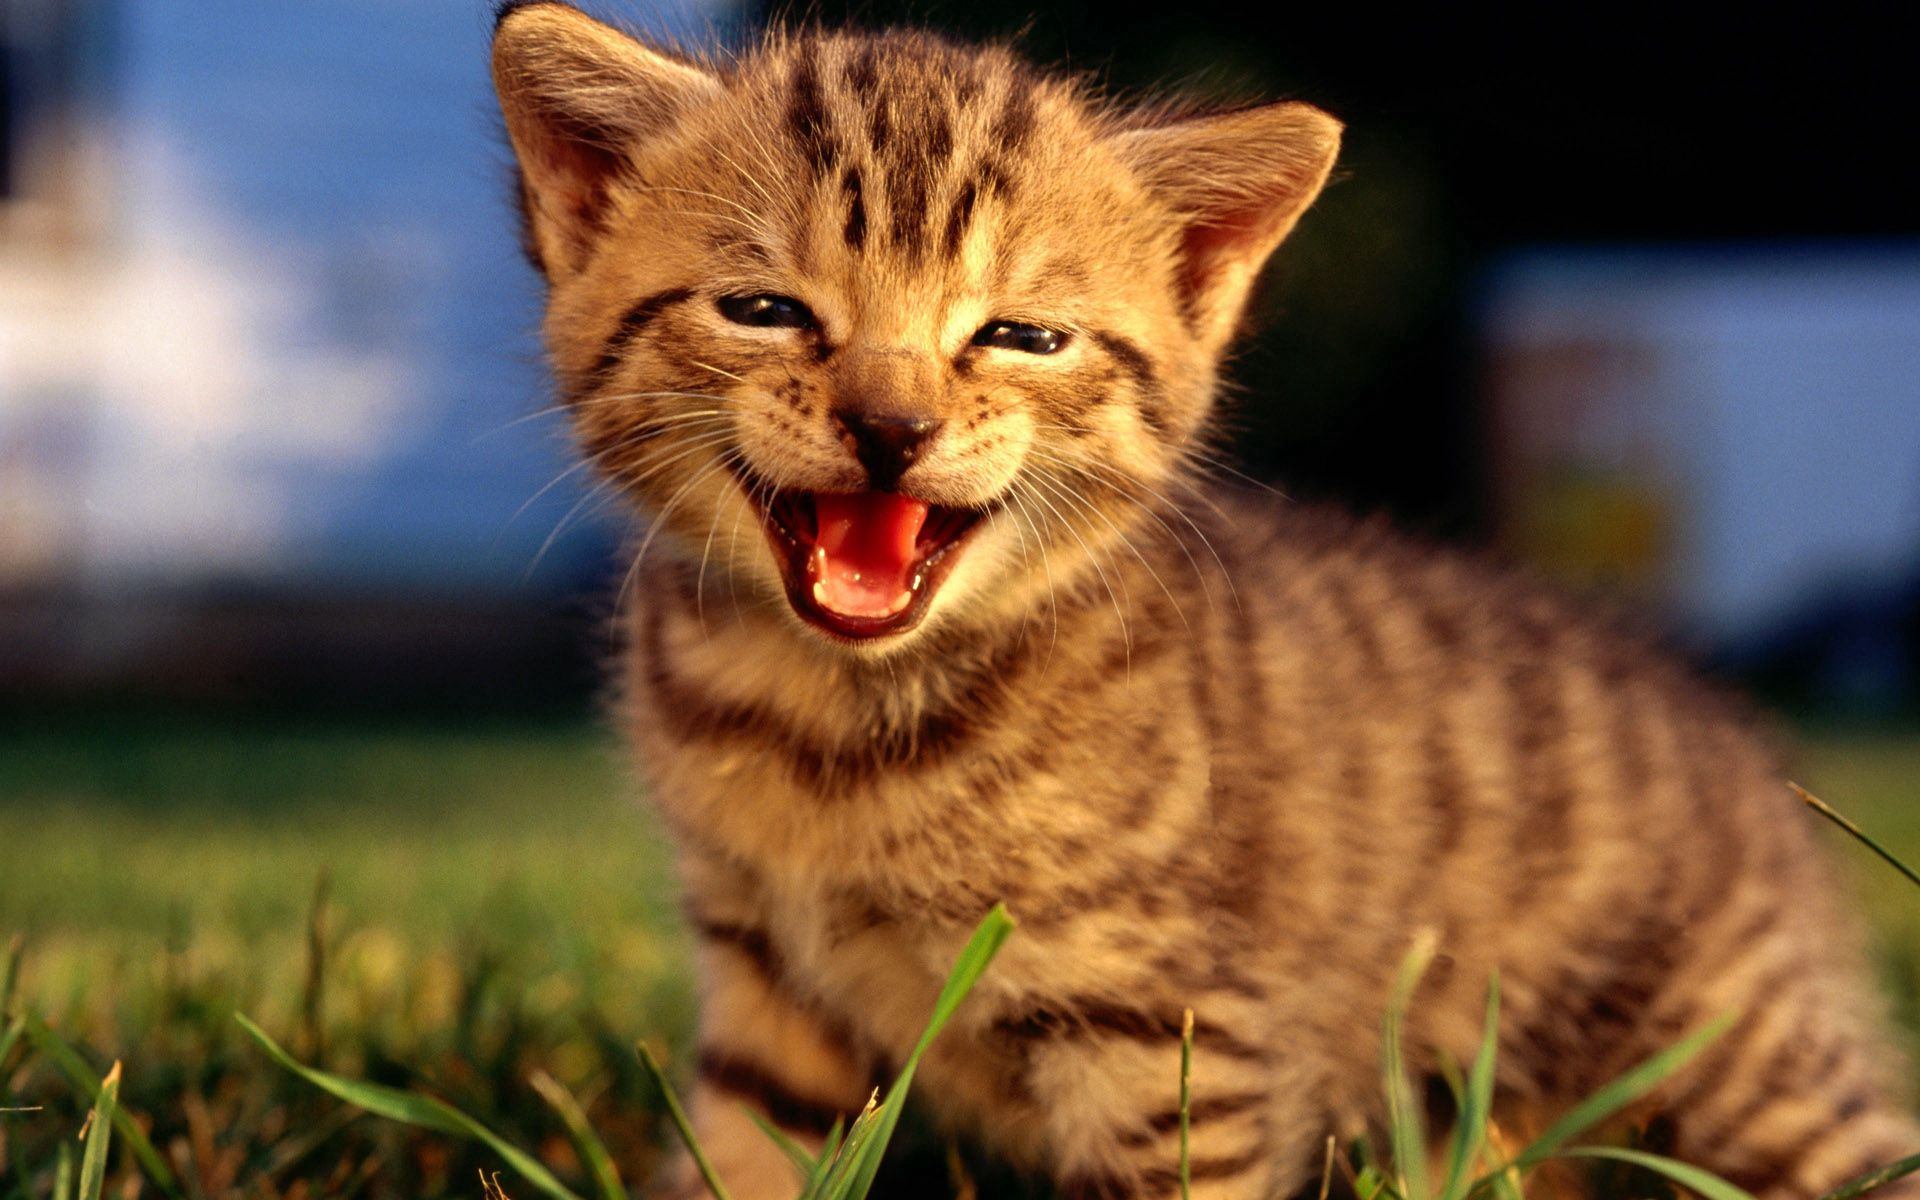 154949 download wallpaper Animals, Kitty, Kitten, Muzzle, Scream, Cry, Fluffy screensavers and pictures for free